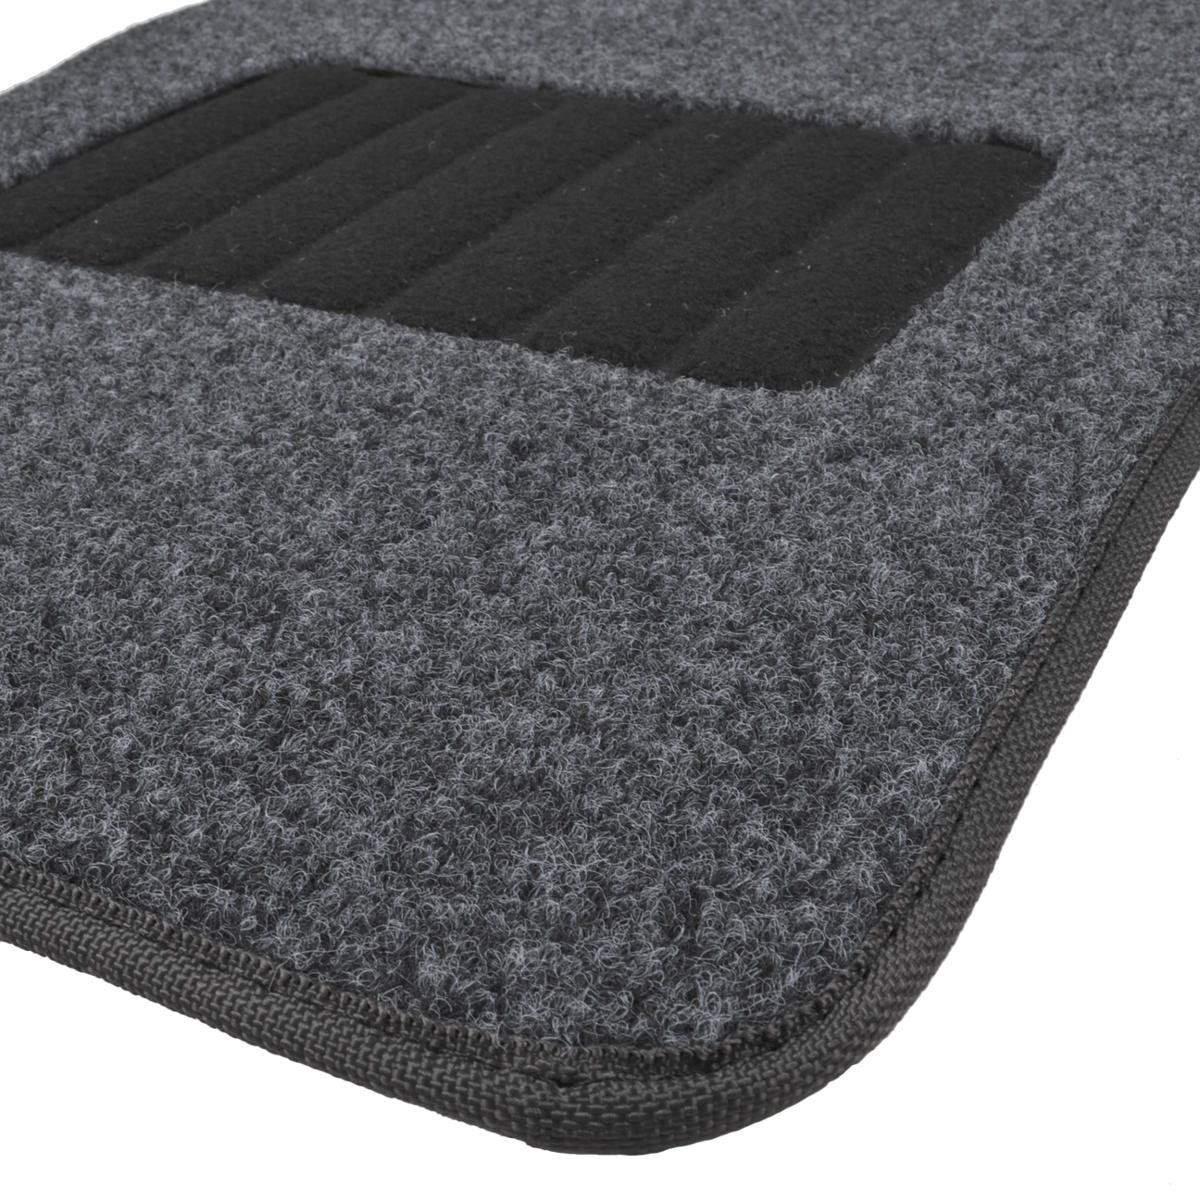 0.3 Carpet Ounce BDK MotorTrend Premium Thick Plush Carpet Car Ridged Floor Mats Dark Gray